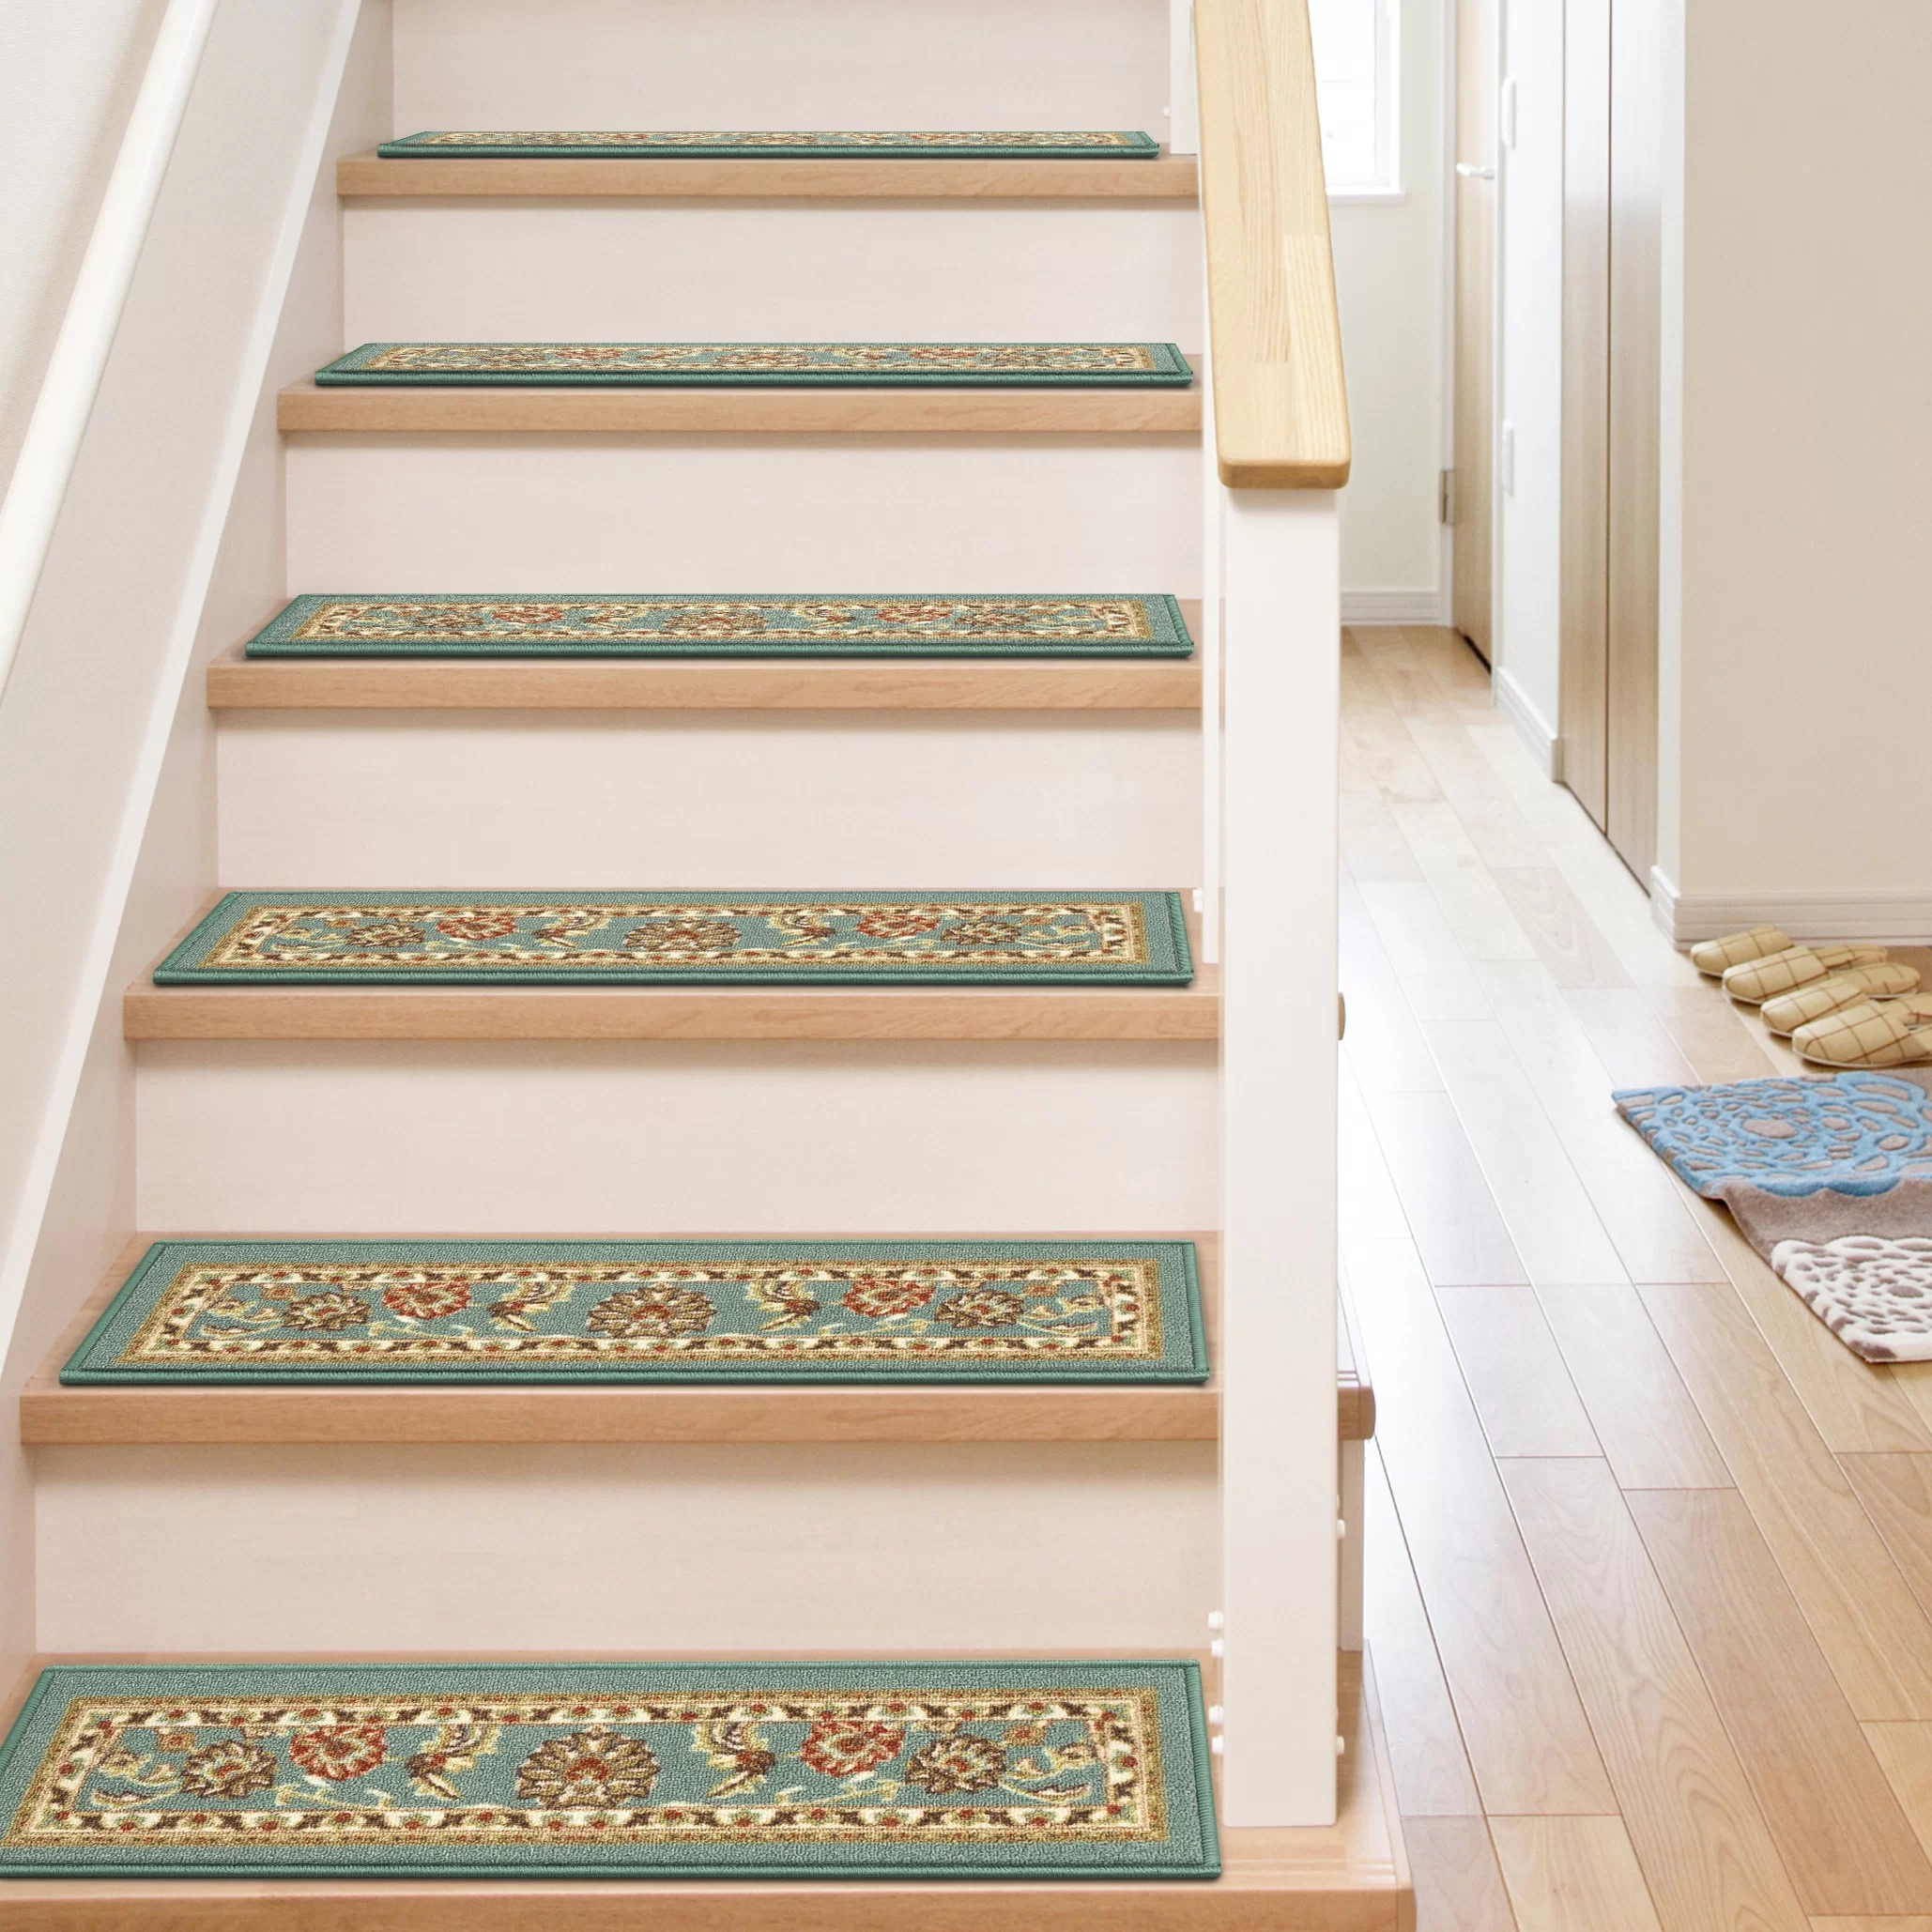 Well Woven Kings Court Oriental Non Skid Stair Tread Reviews | Oriental Carpet Stair Treads | Non Skid | Kings Court | Carpet Runners | Amazon | Stair Runner